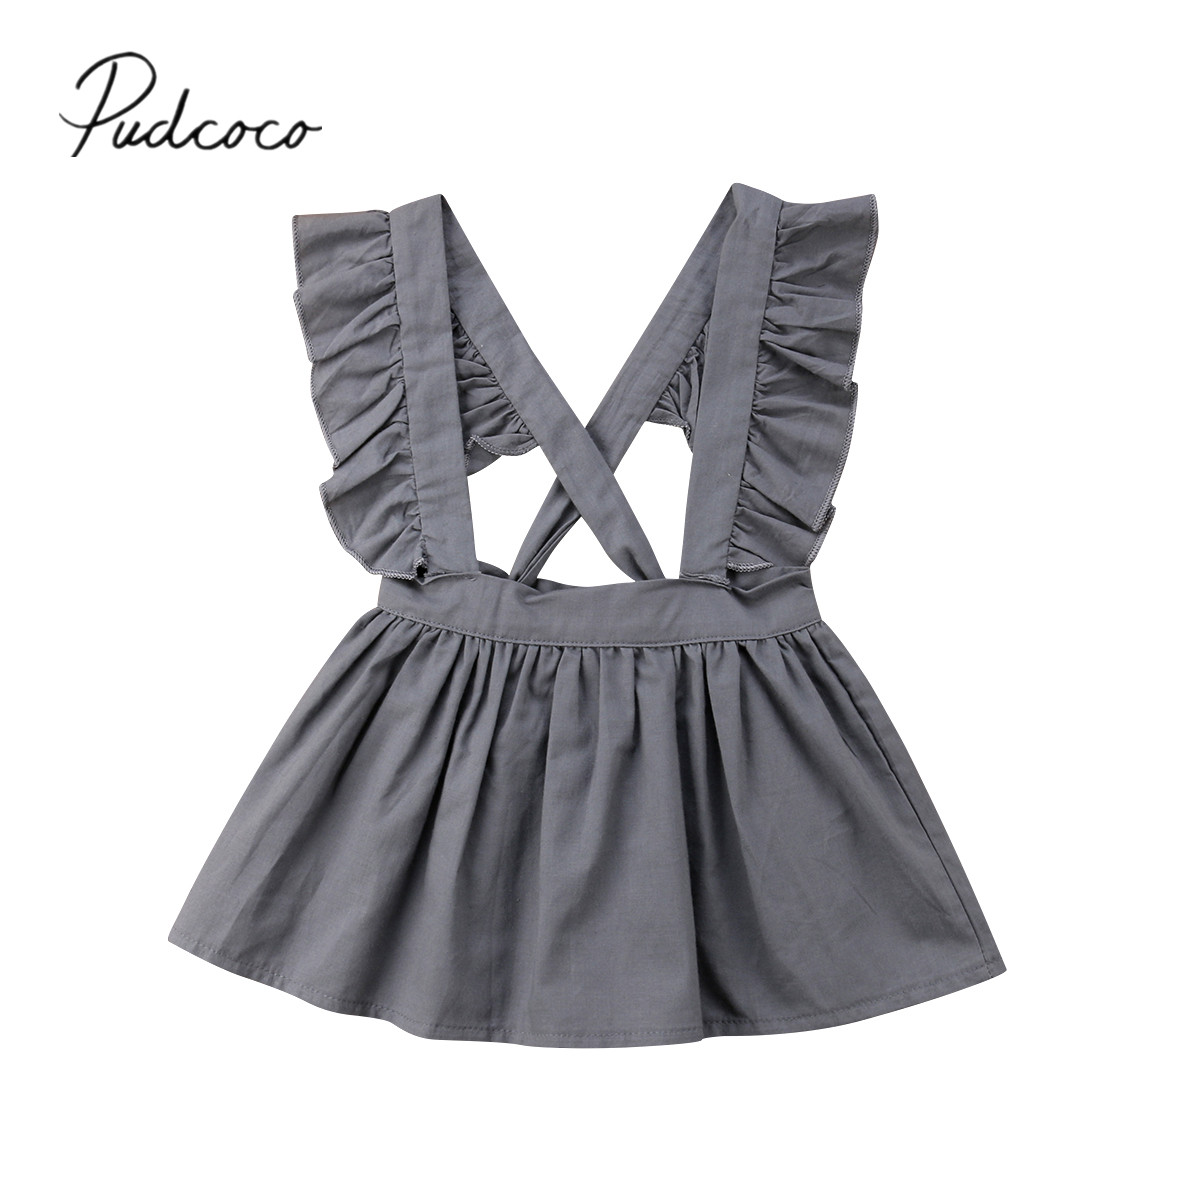 2018 Brand New Newborn Infant Baby Girl Estate 0-24 M Sweet Dress Ruffles Solid Backless Croce A-line Al Ginocchio-lunghezza Tuta Vestito